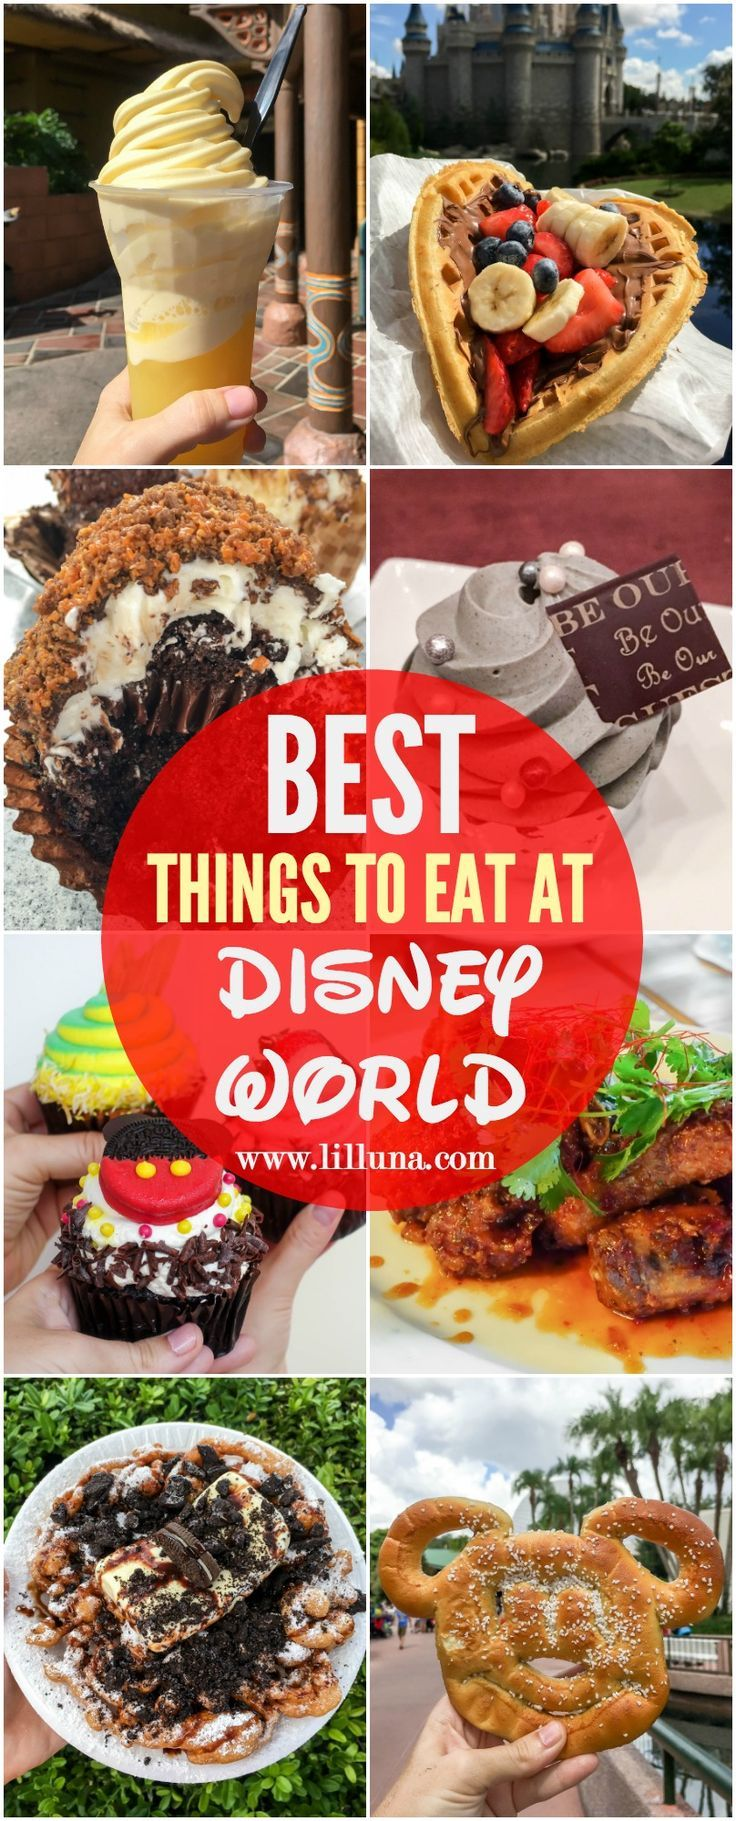 Disney World Food and Restaurants | A GREAT list of favorite things to eat at Disney World! You won't want to miss these!